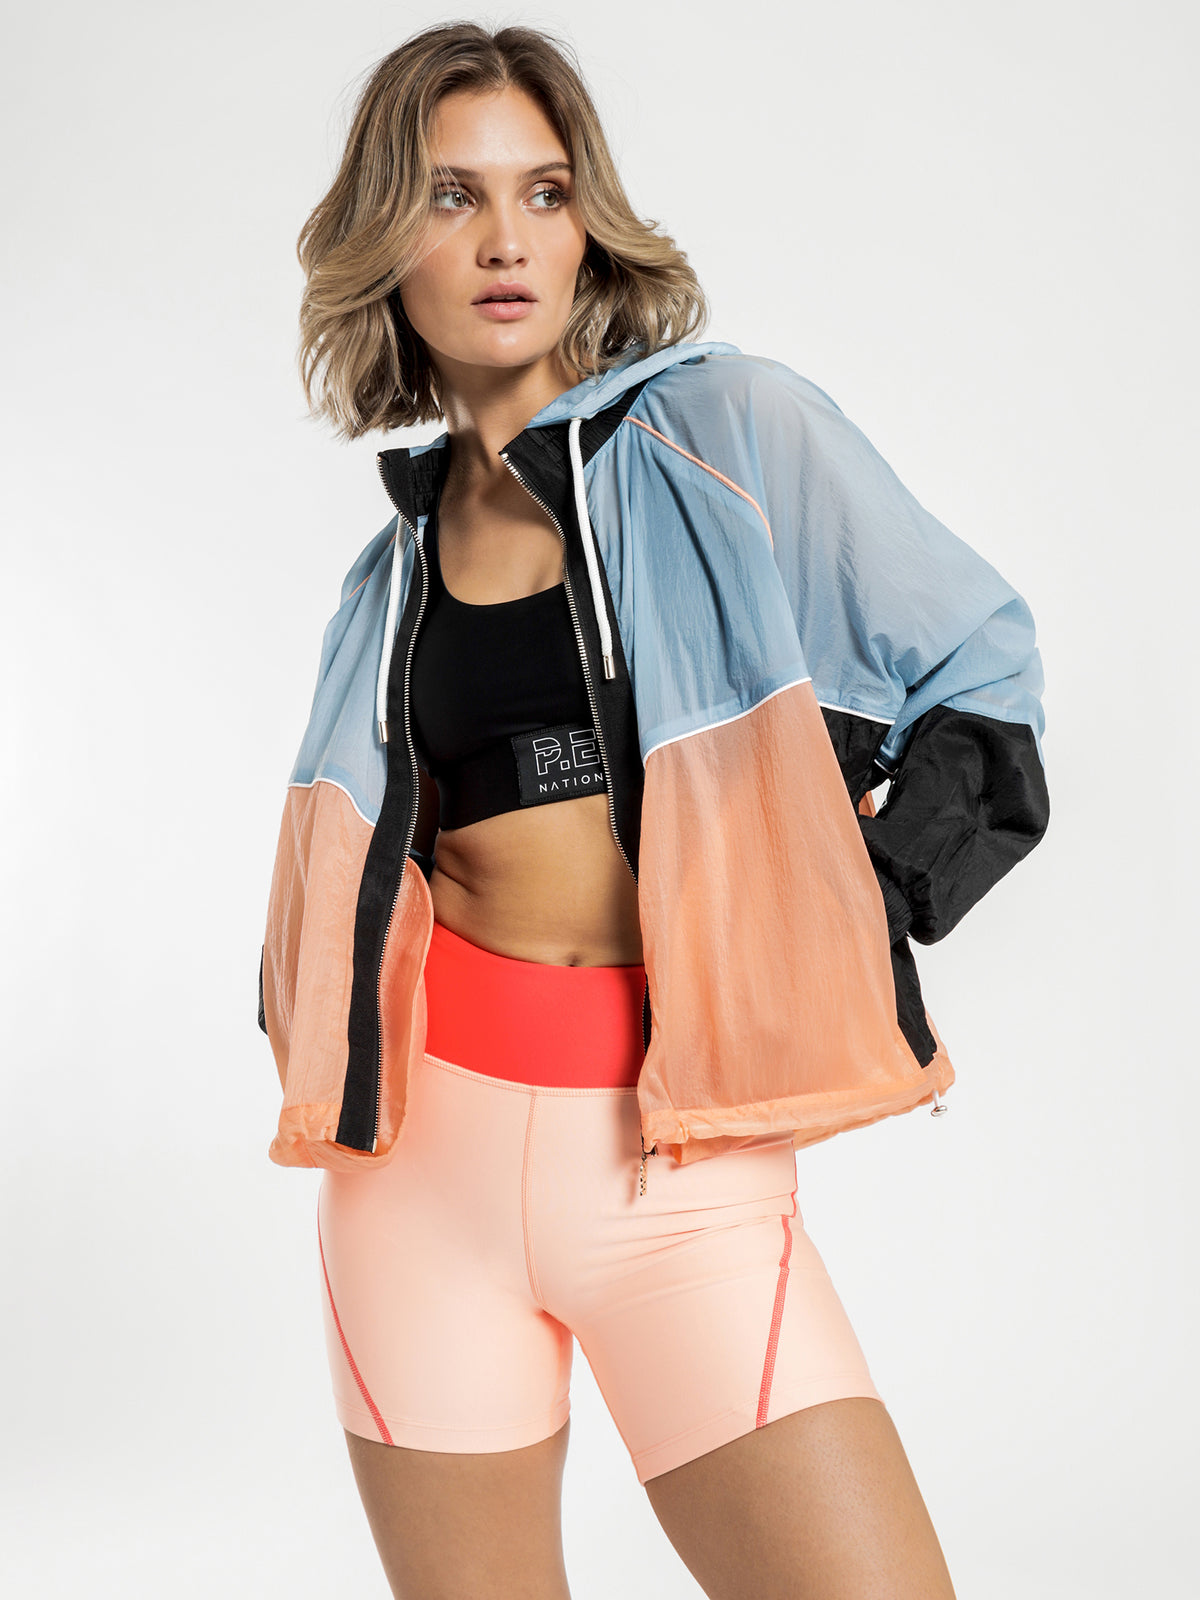 Aerial Drop Jacket in Light Blue & Peach